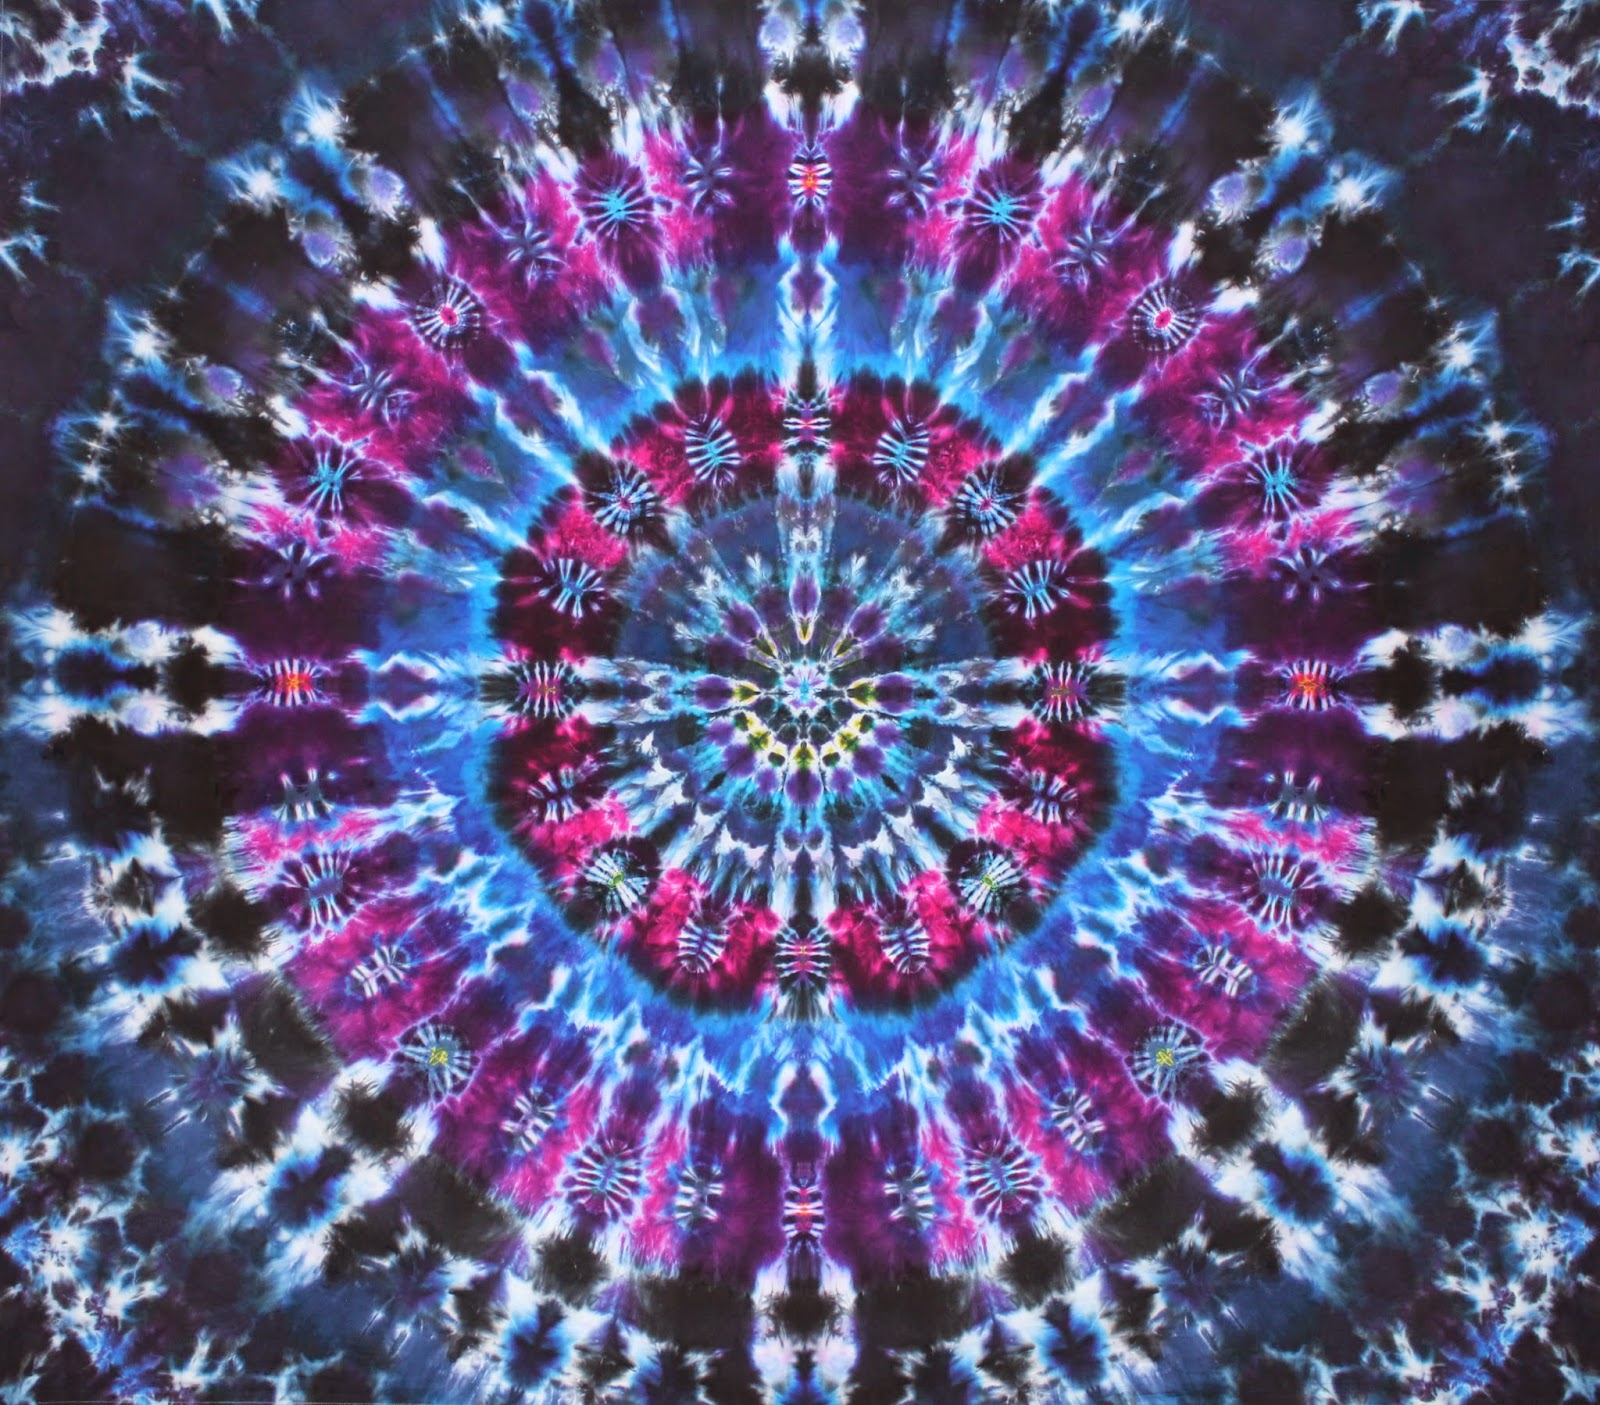 Popular   Wallpaper Home Screen Trippy - trippy-backgrounds-for-iphone  Image_46378.jpg